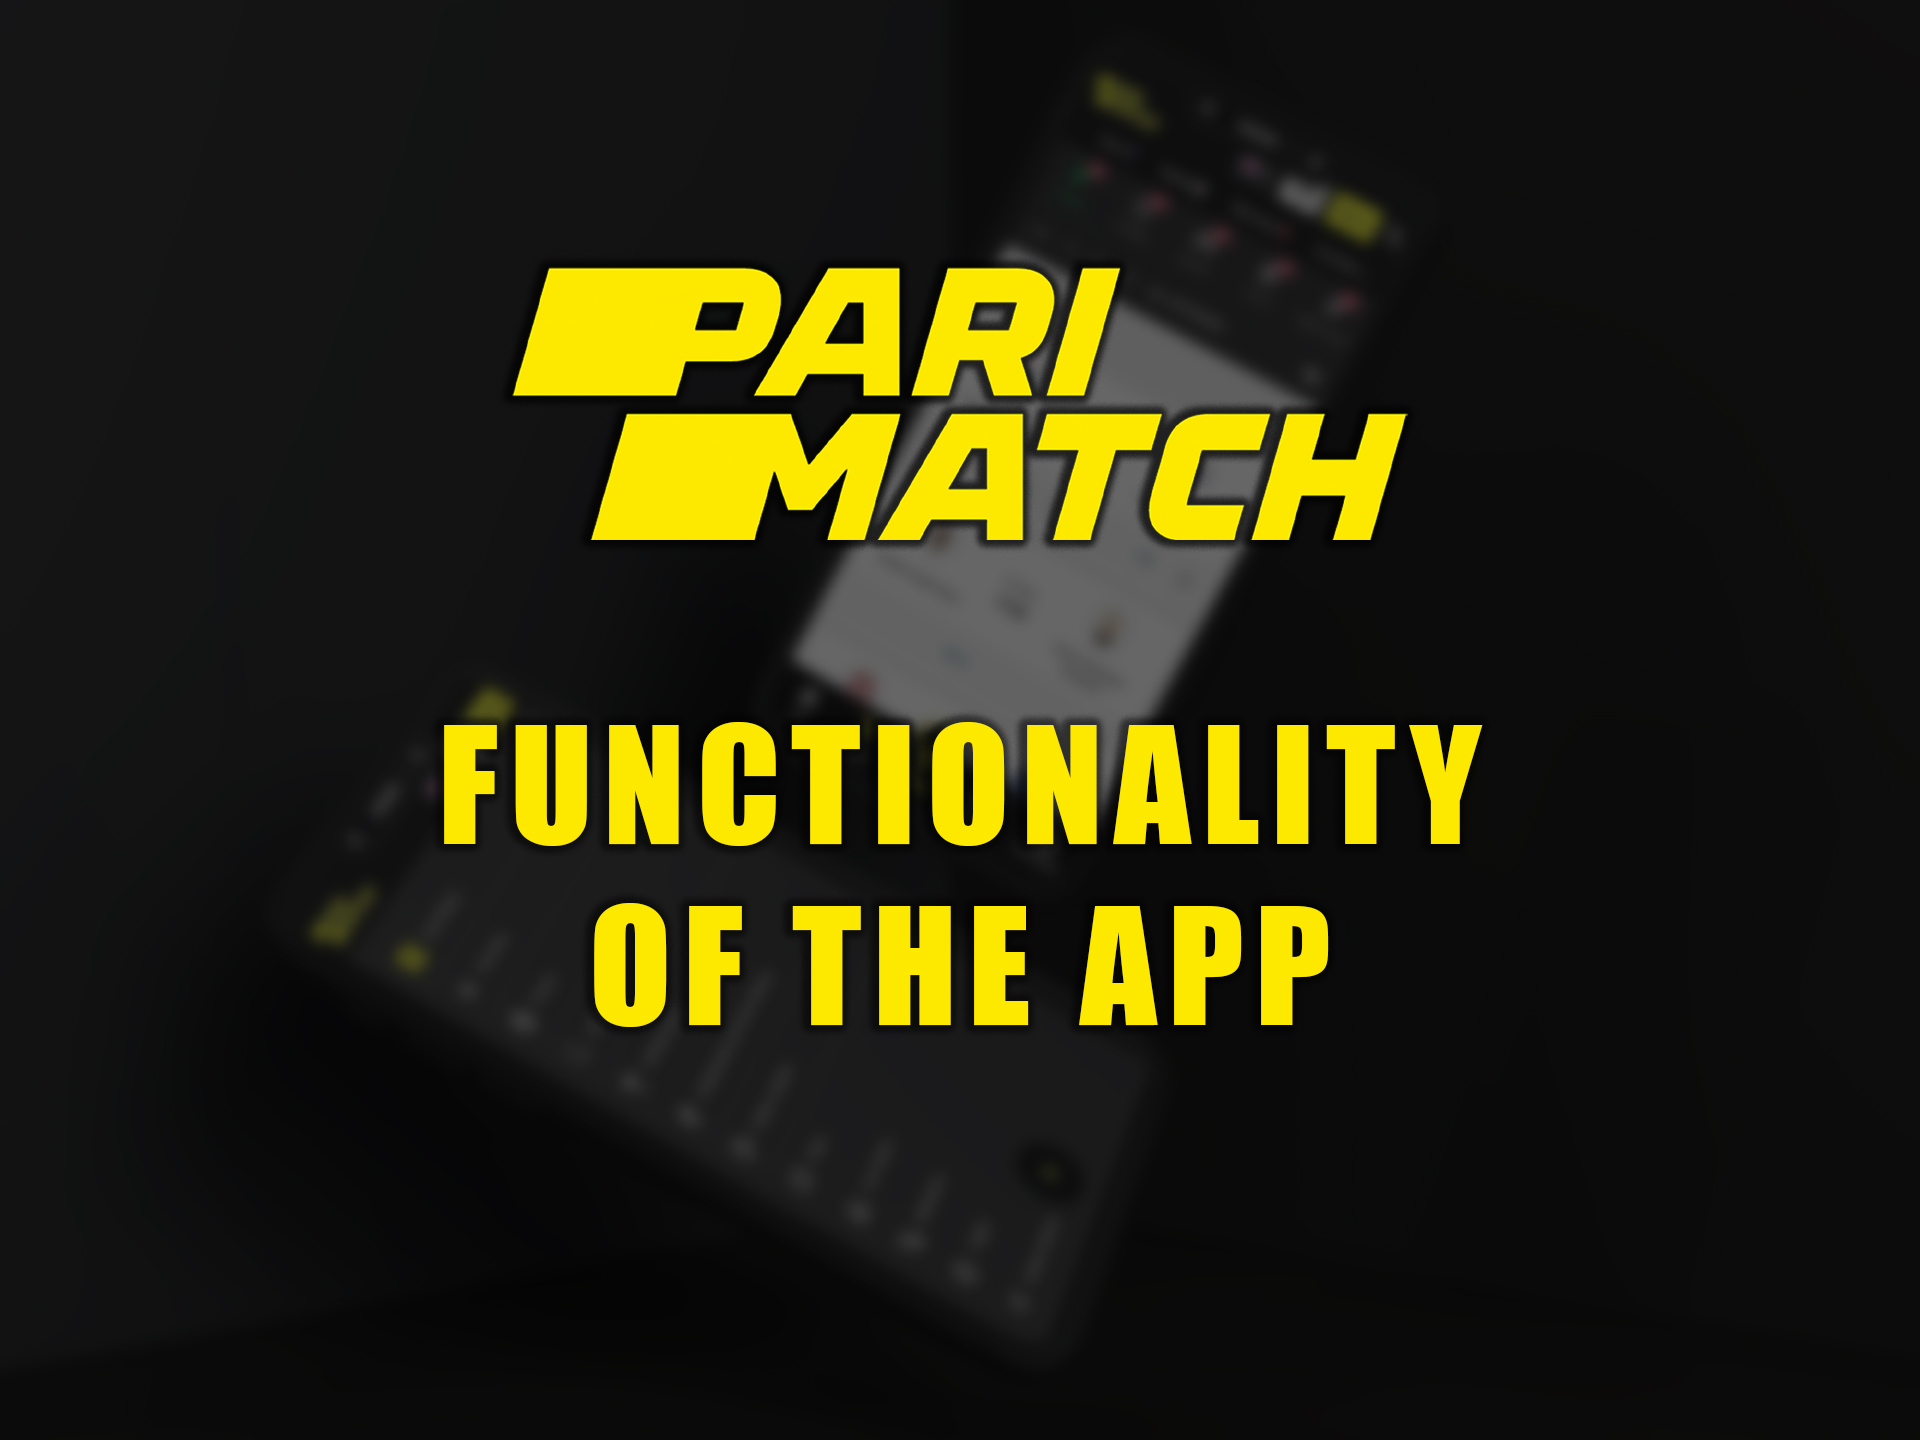 Download the app to feel how its functions simplify betting and following the matches.